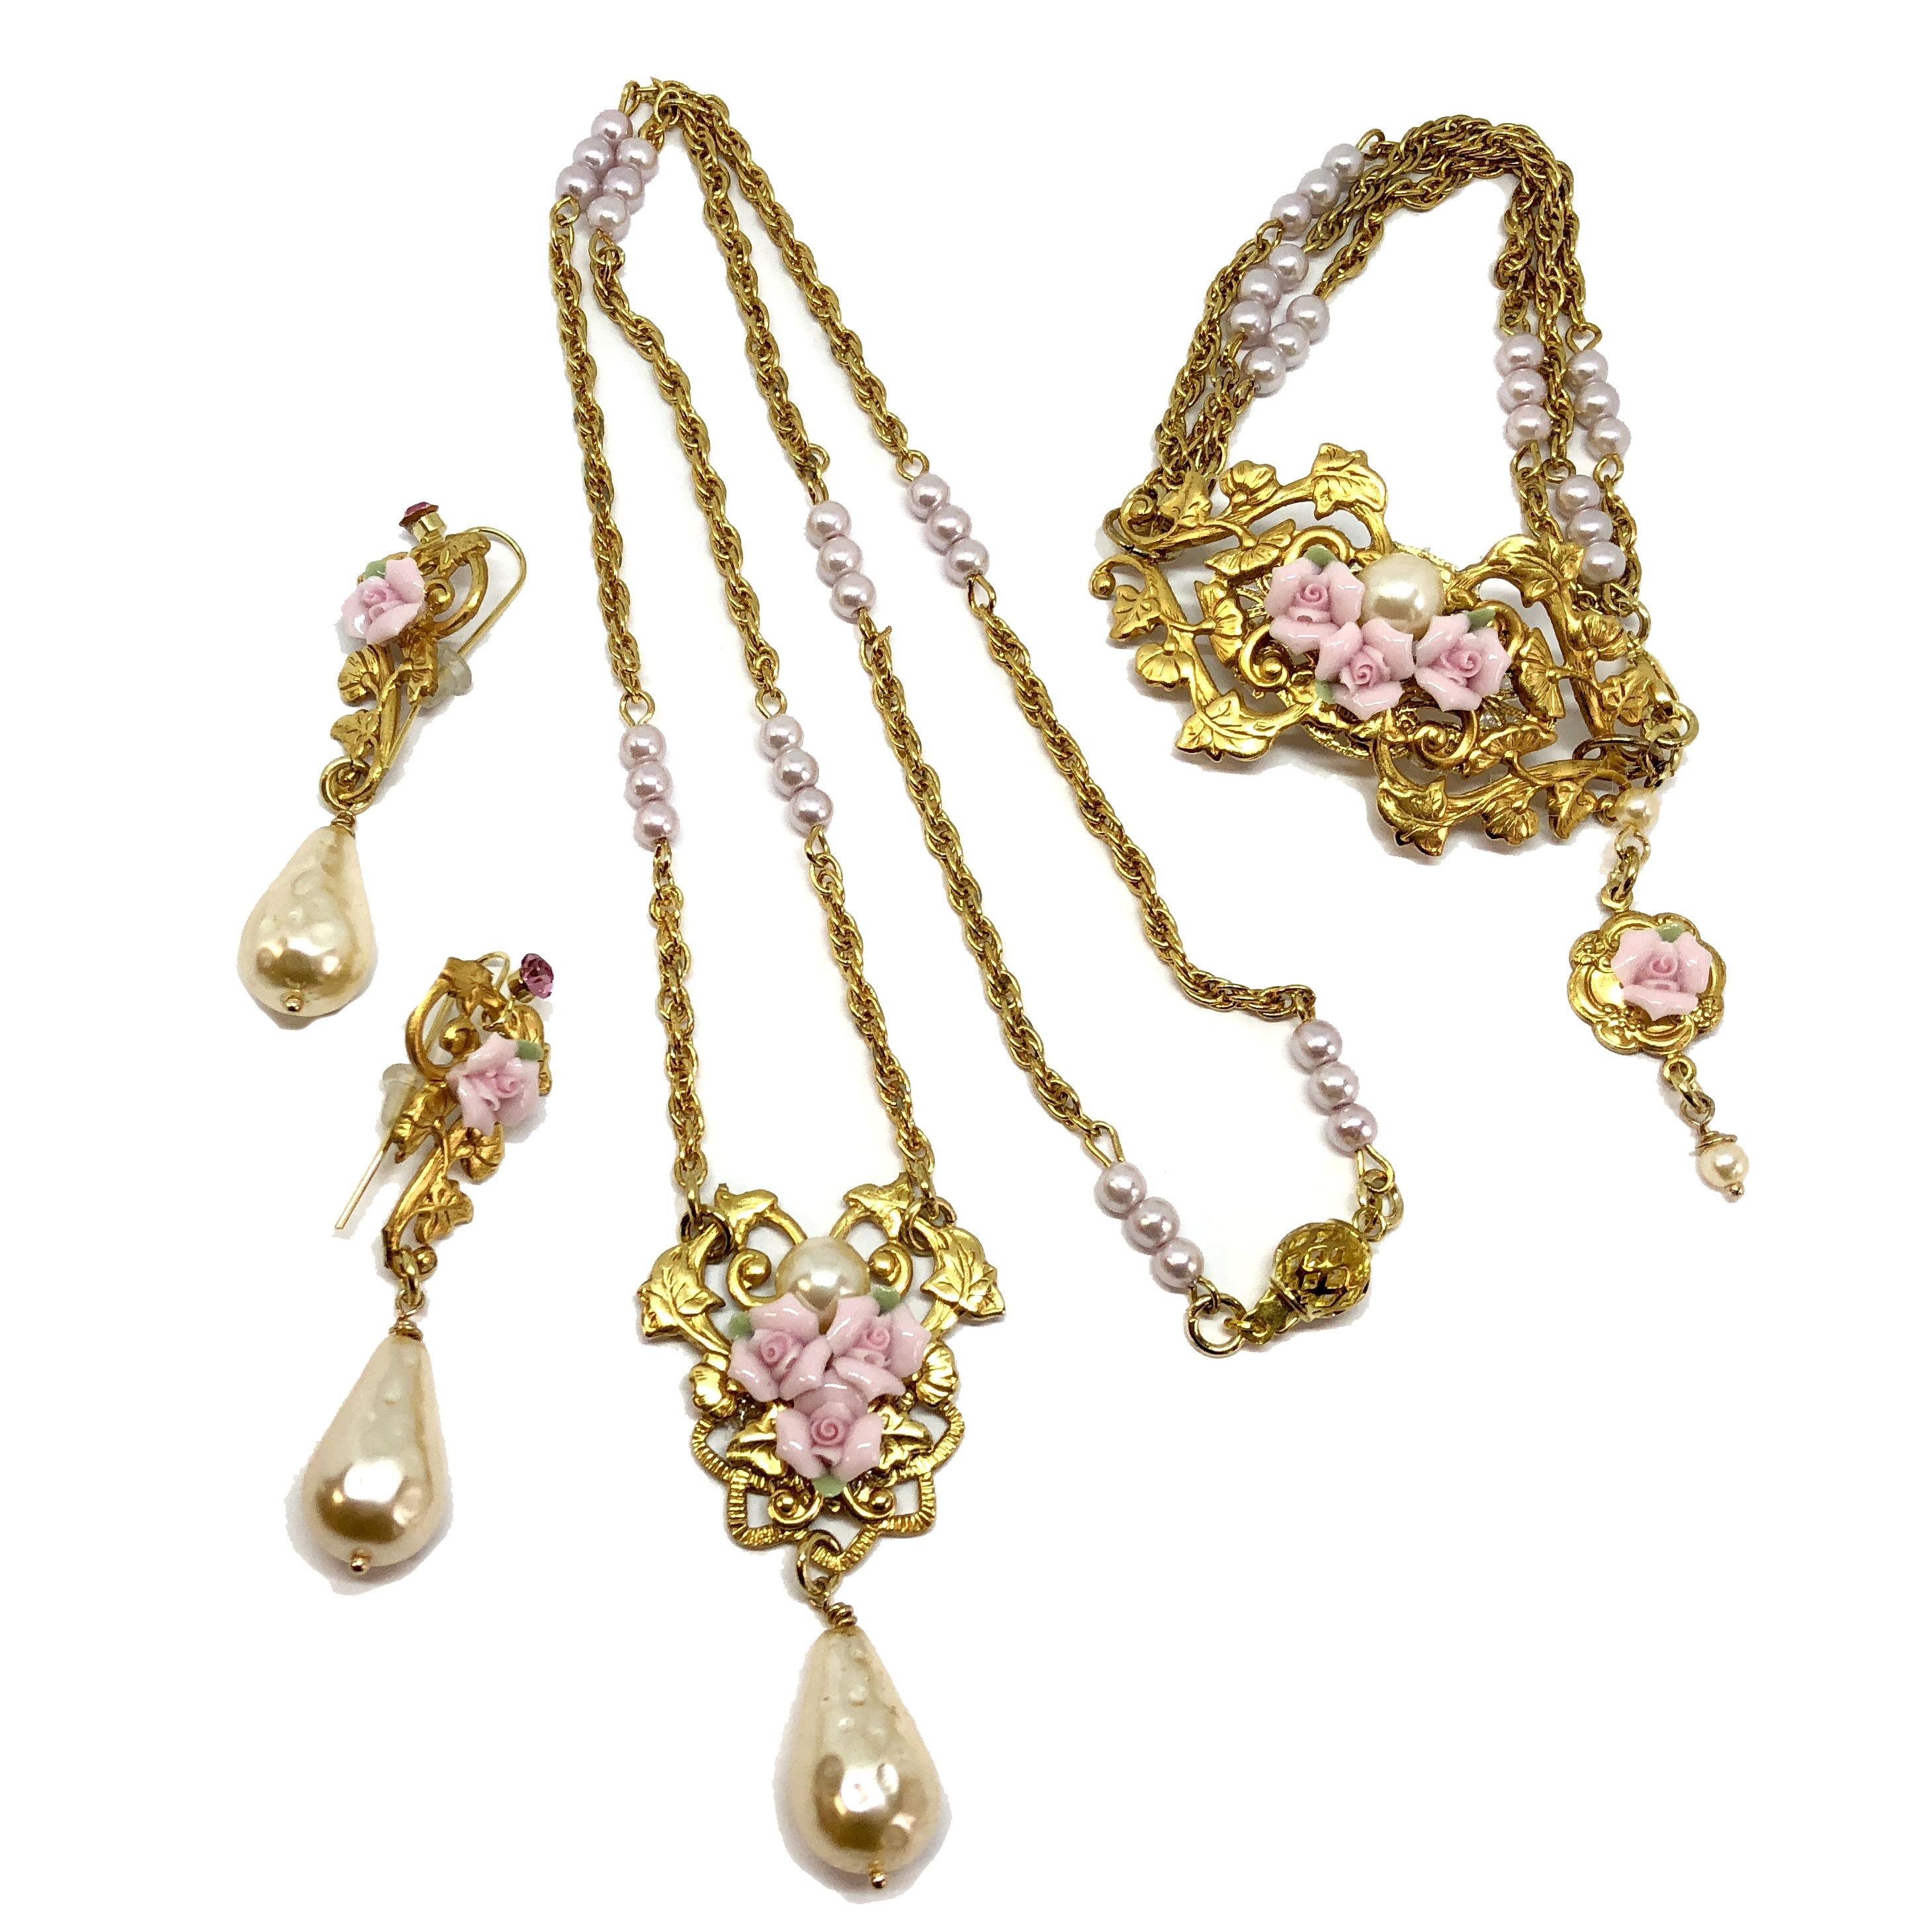 Parure Set, Necklace, Bracelet, Earrings, 05360, pearl chain, bisque rose necklace, bsue boutiques, college necklace, necklace making, jewelry making, jewelry set, bsue boutiques, 3 piece jewelry set, classic gold jewelry, bisque rose jewelry set